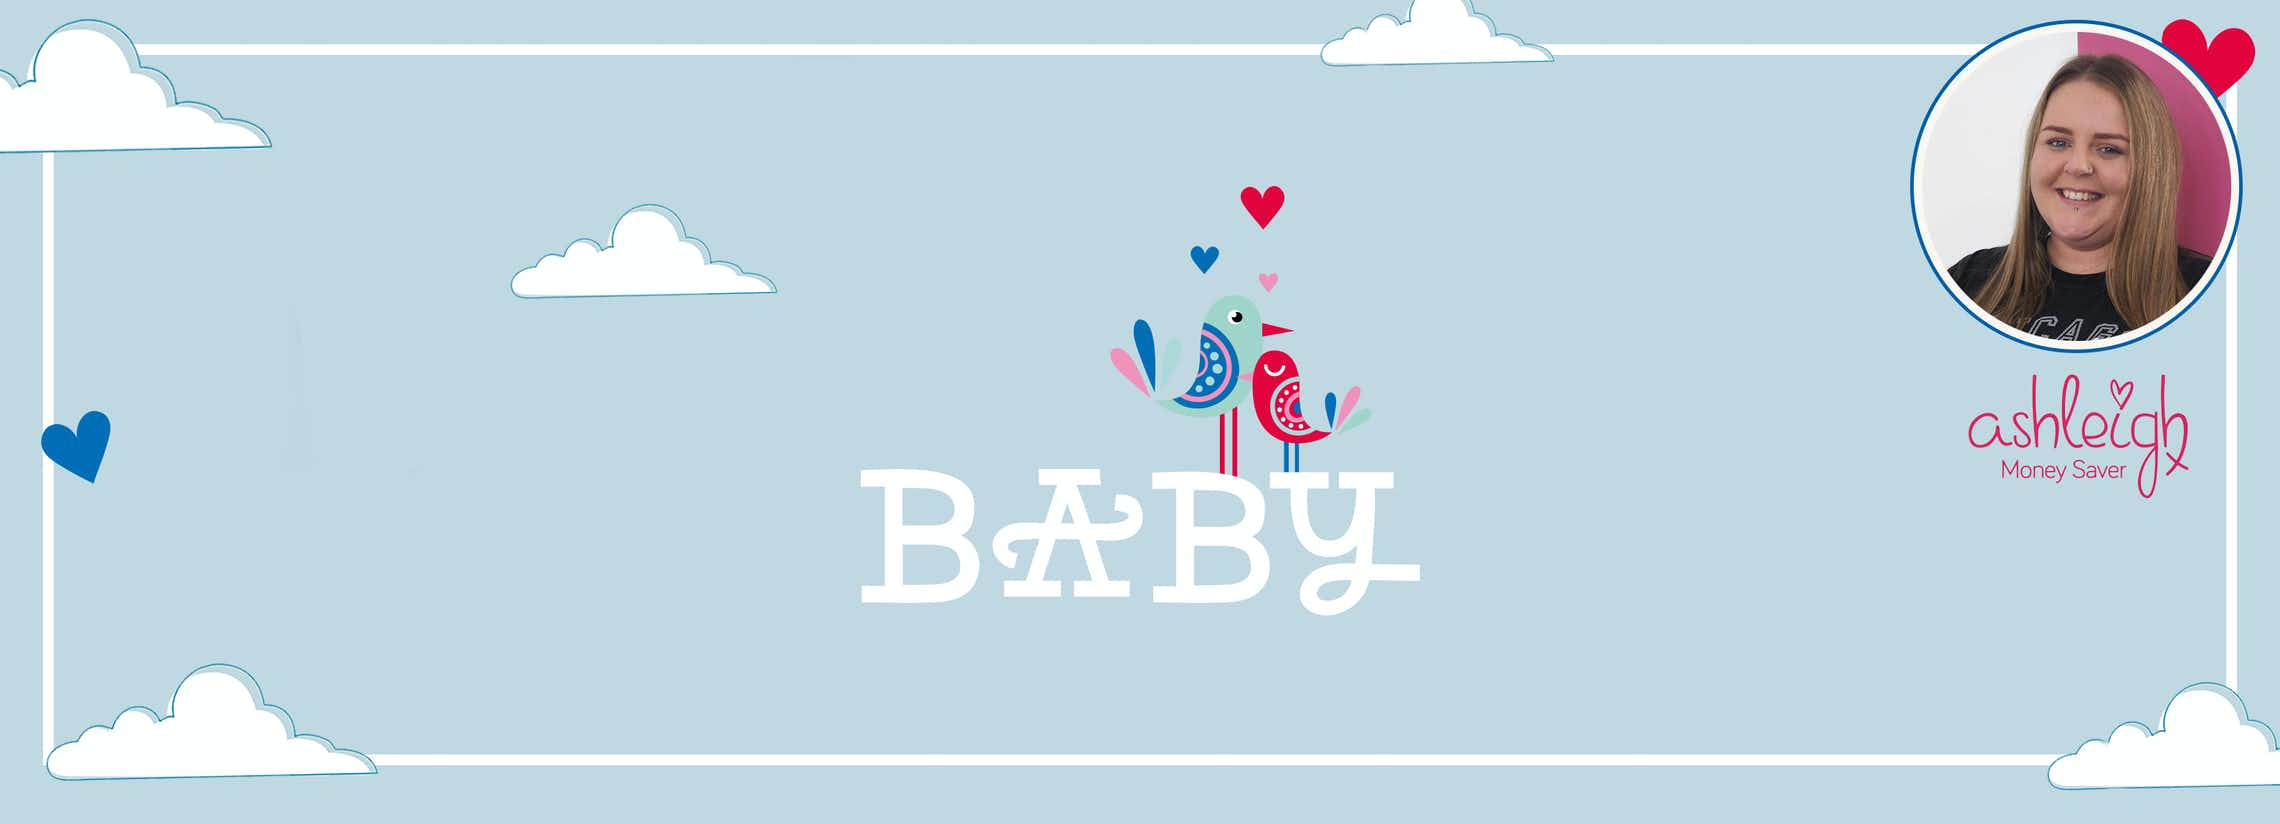 Baby Shower Gift Ideas From £2!